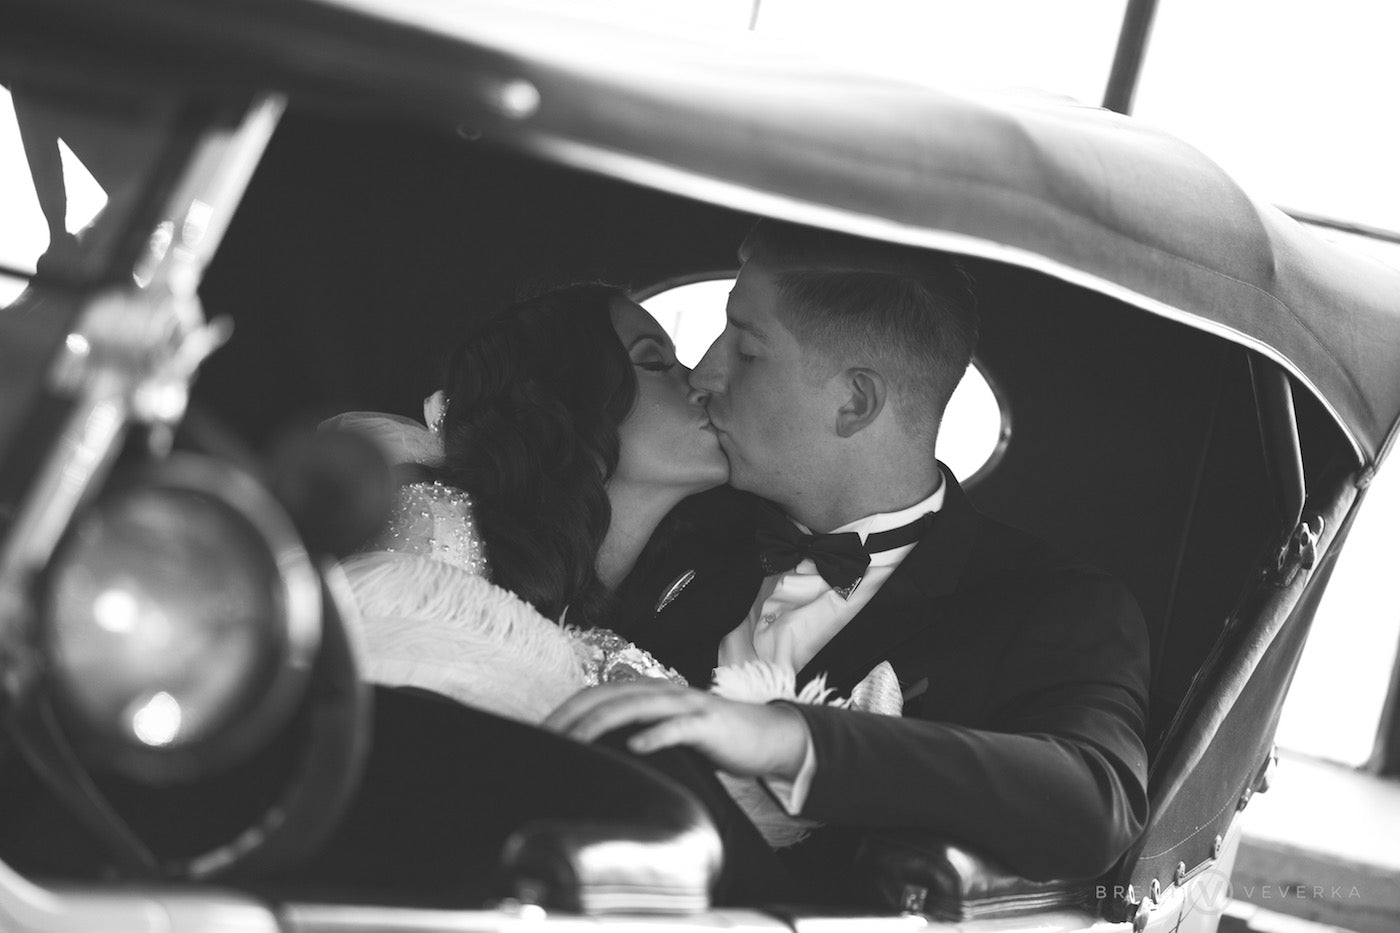 Bride and Groom Kiss in Antique Car | Glam Speakeasy Wedding | Brent Veverka Media